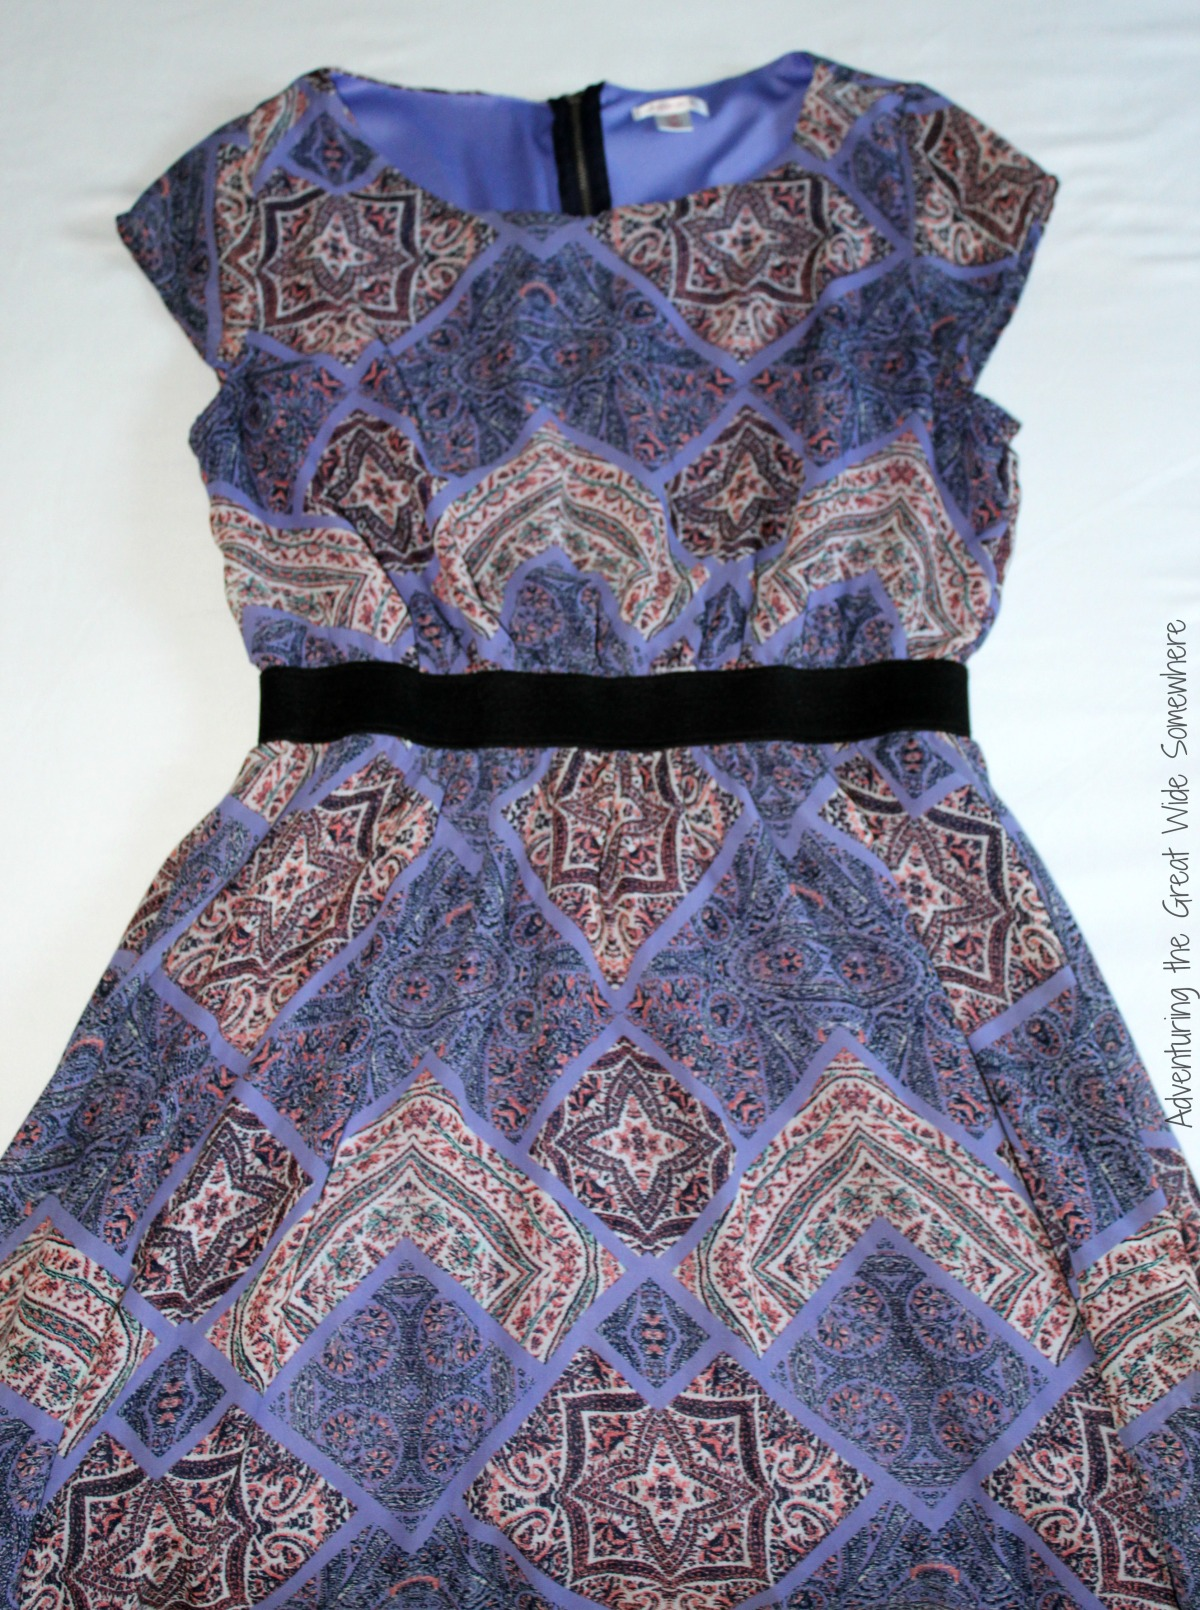 One Dress for Europe.jpg